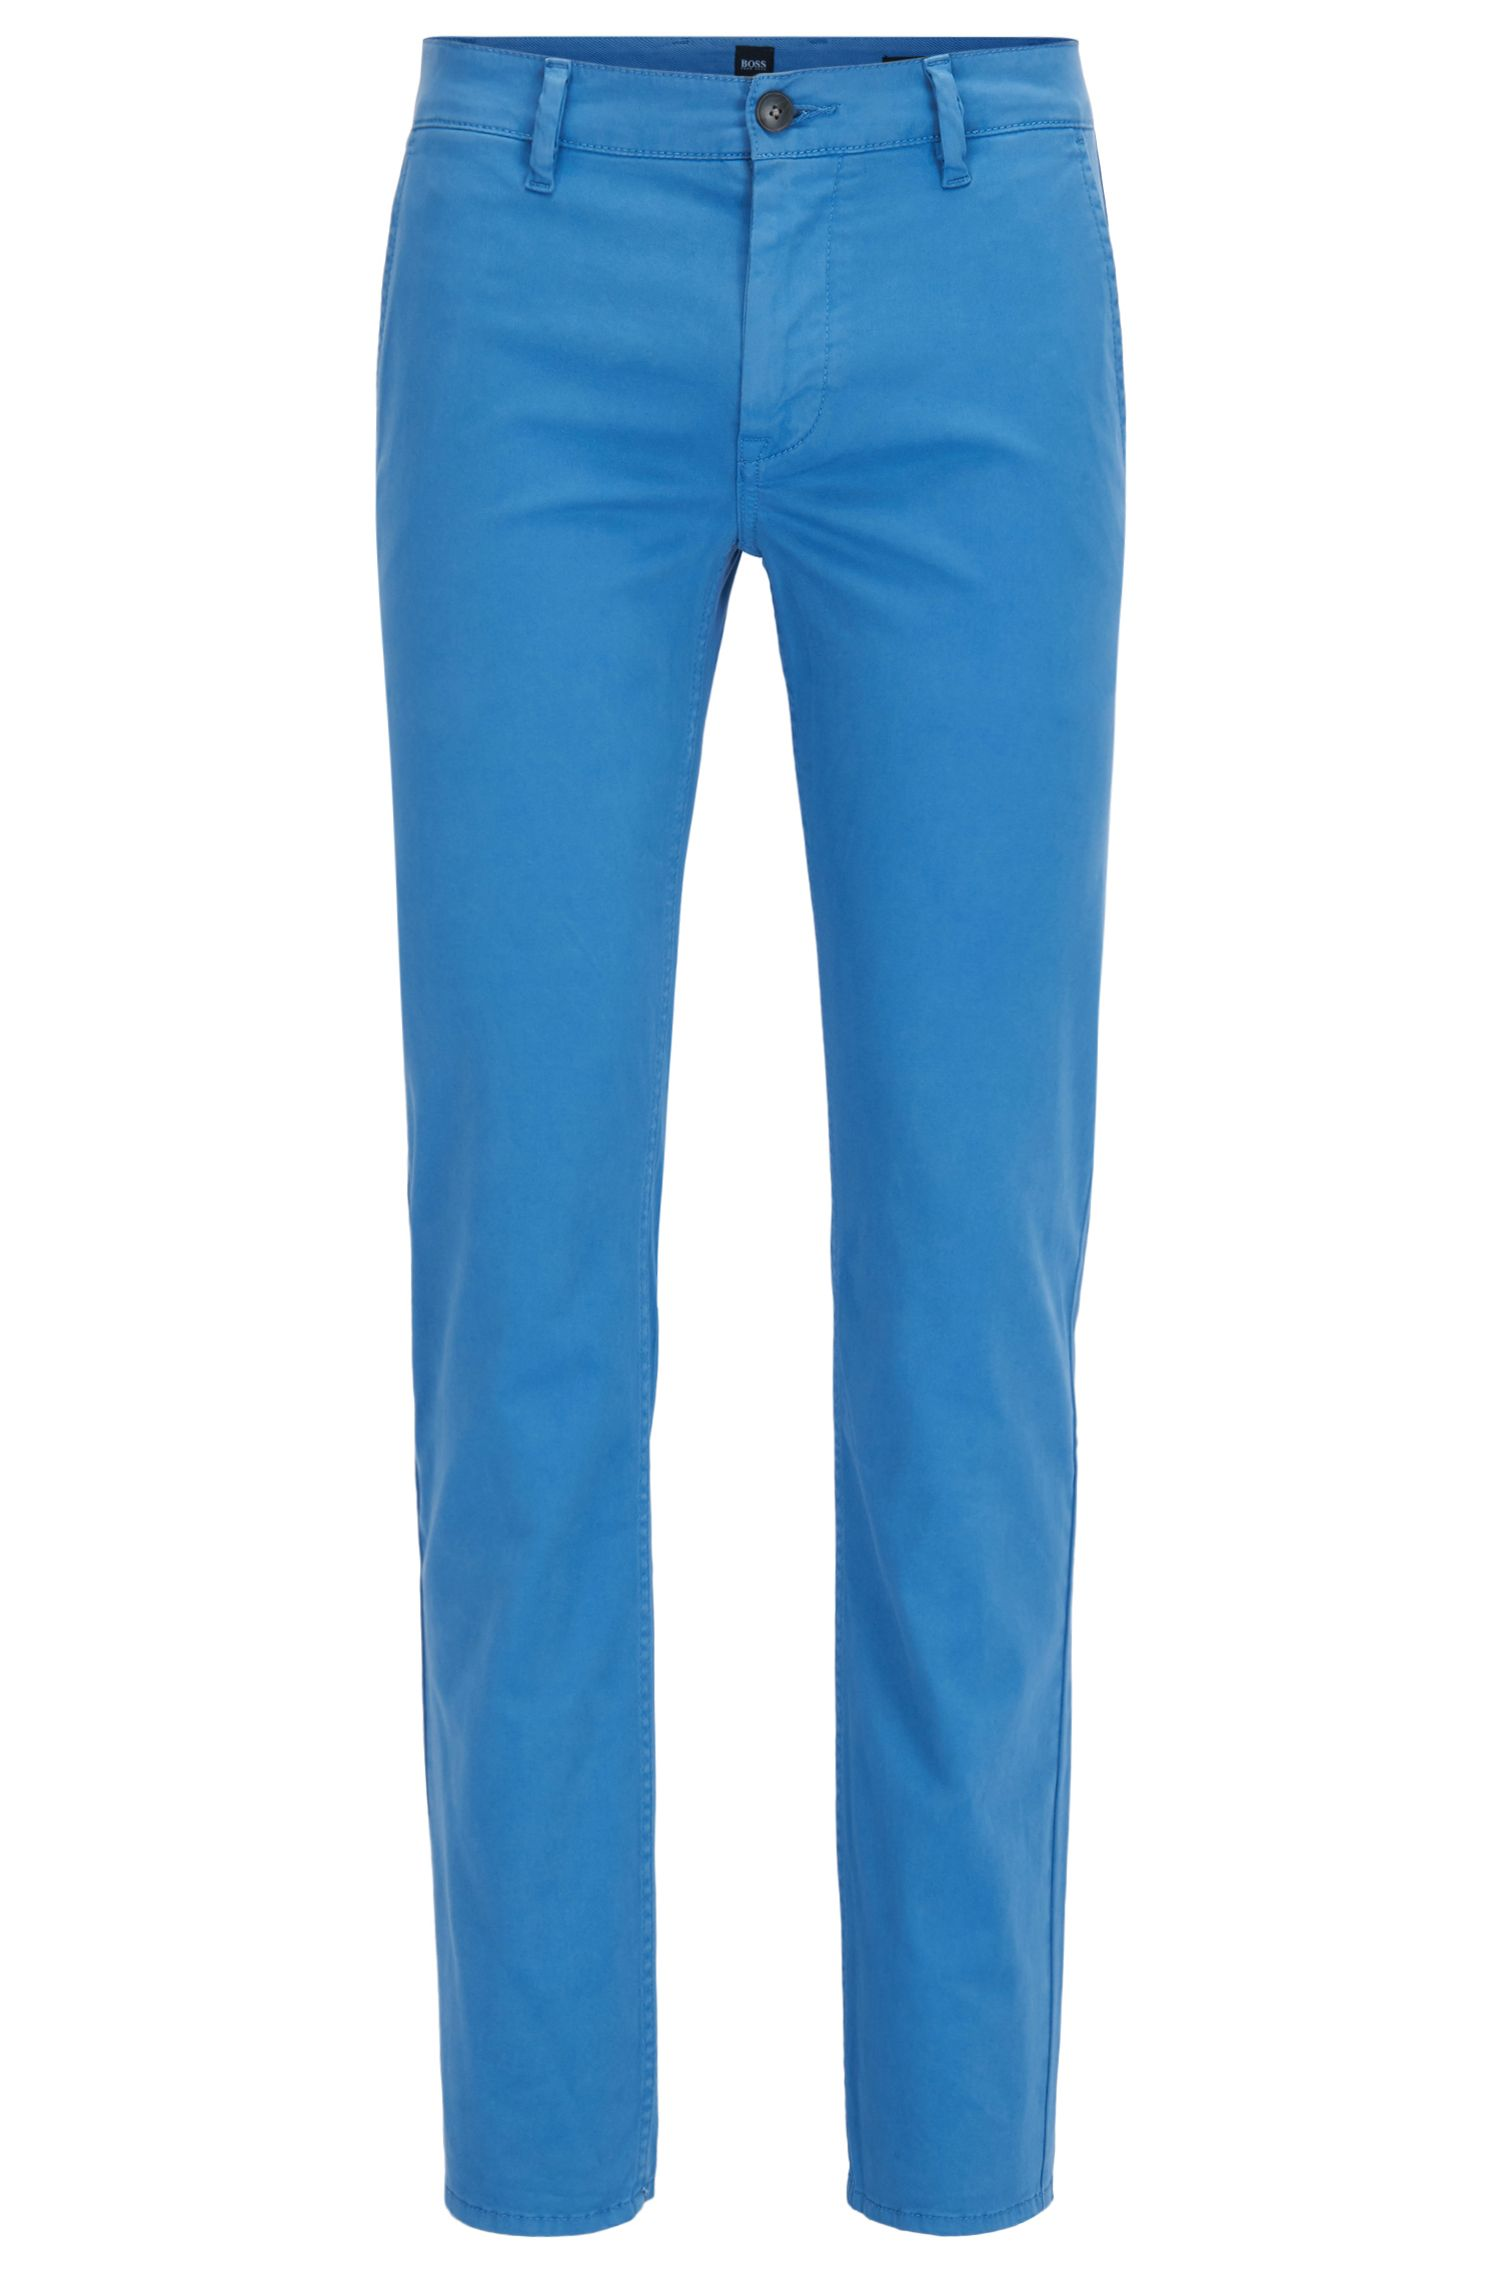 Chino casual Slim Fit en coton stretch brossé